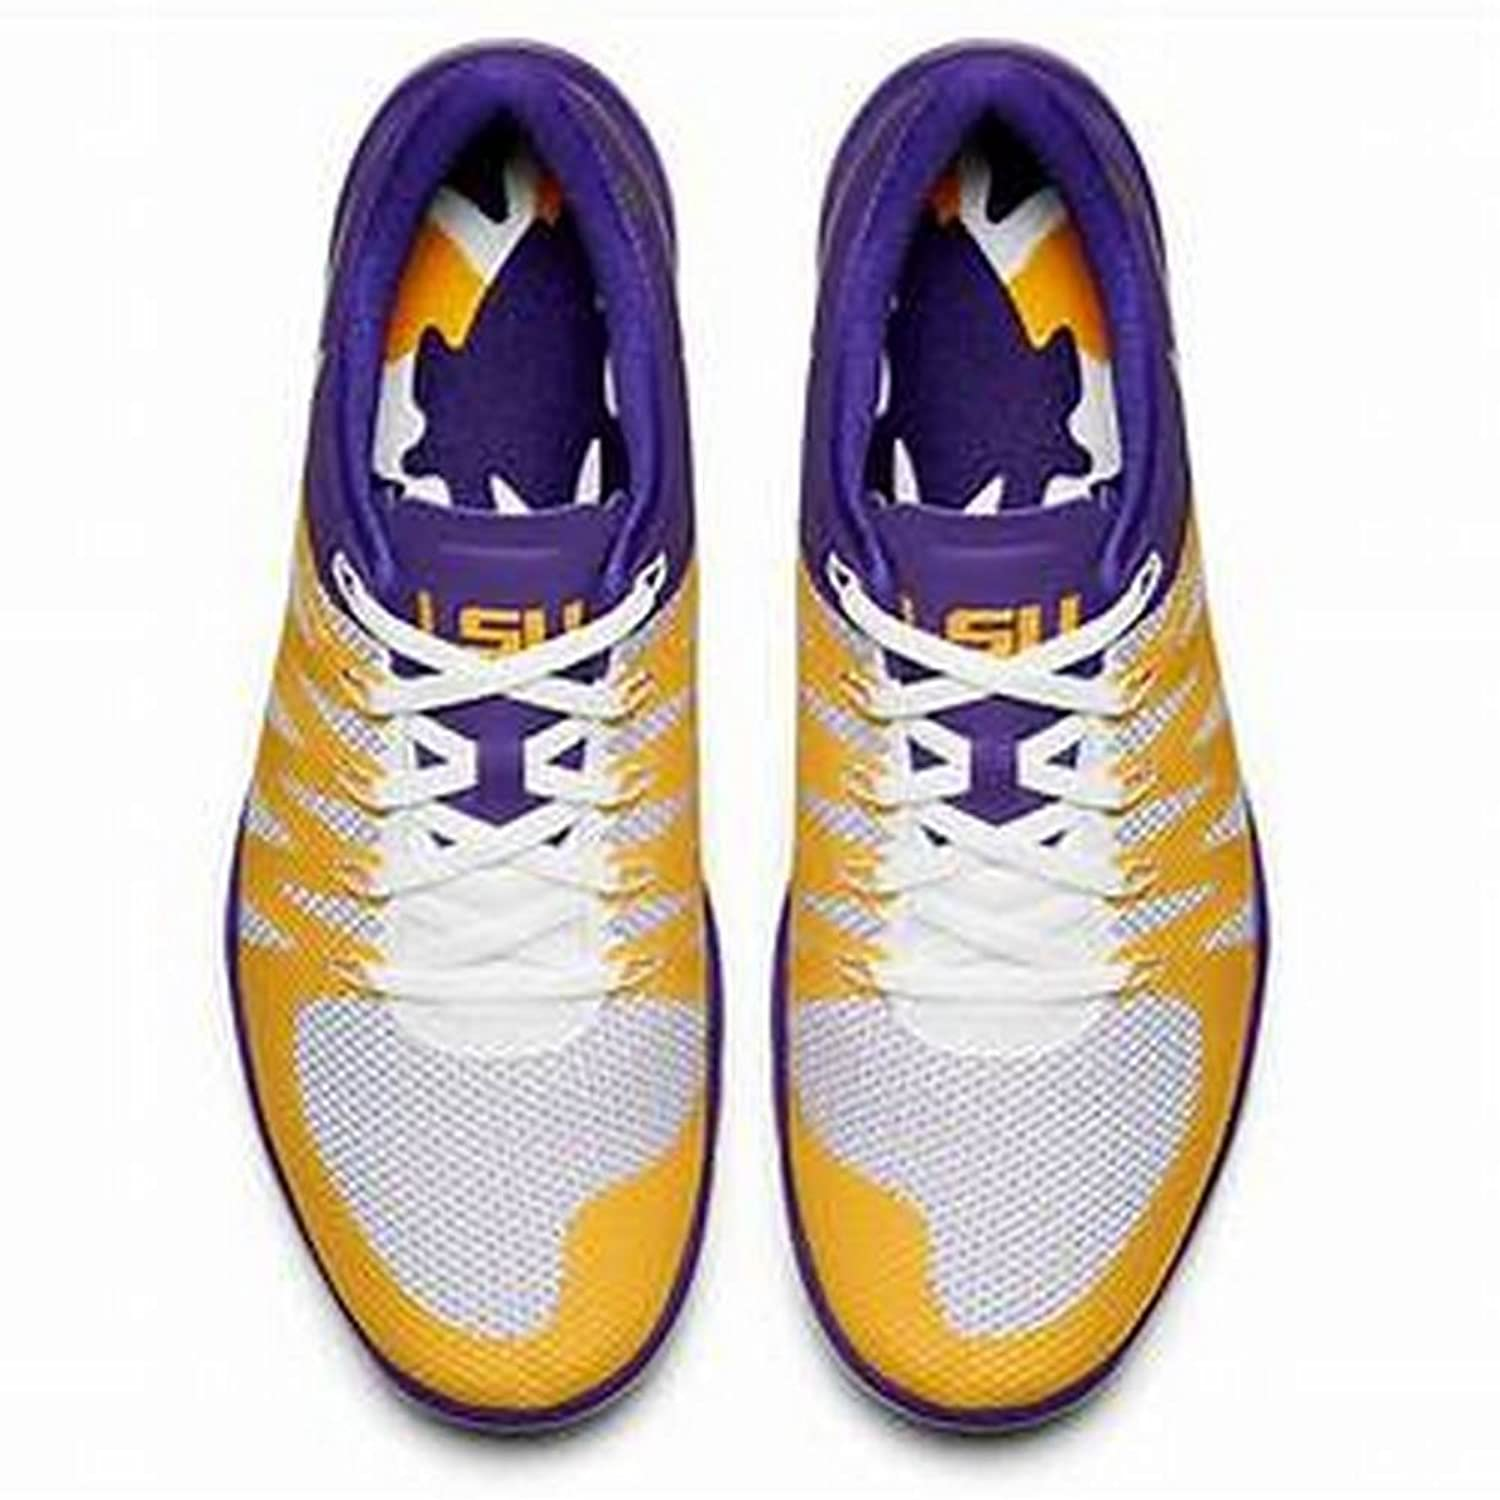 lsu nike free trainer 5.0 v6 shoes for girls